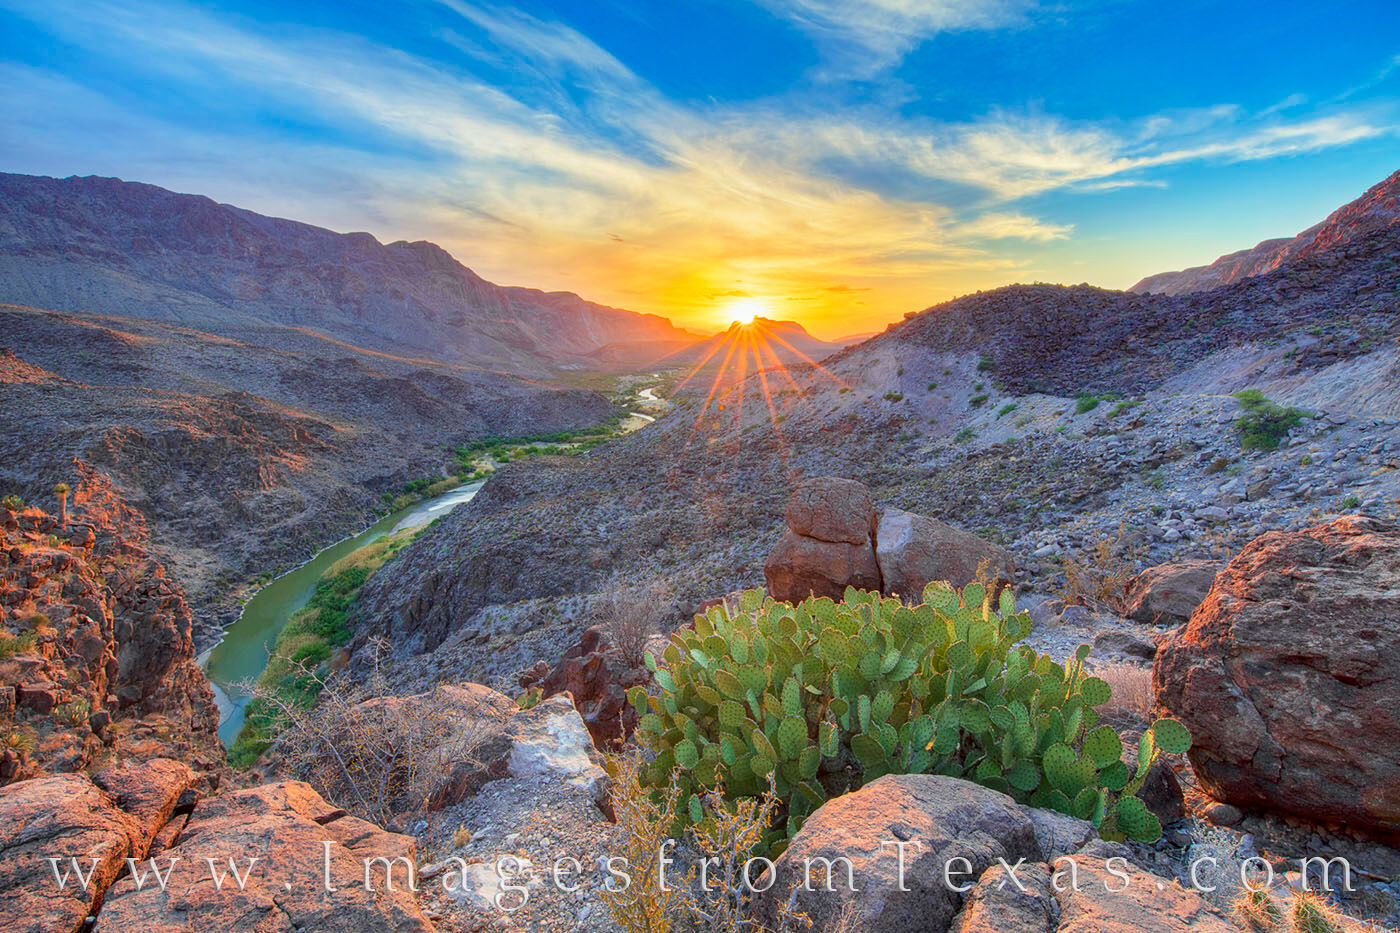 big bend ranch, big hill, FM 170, rio grande, west texas, presidio, lajitas, texas landscapes, vistas, west texas image, big bend